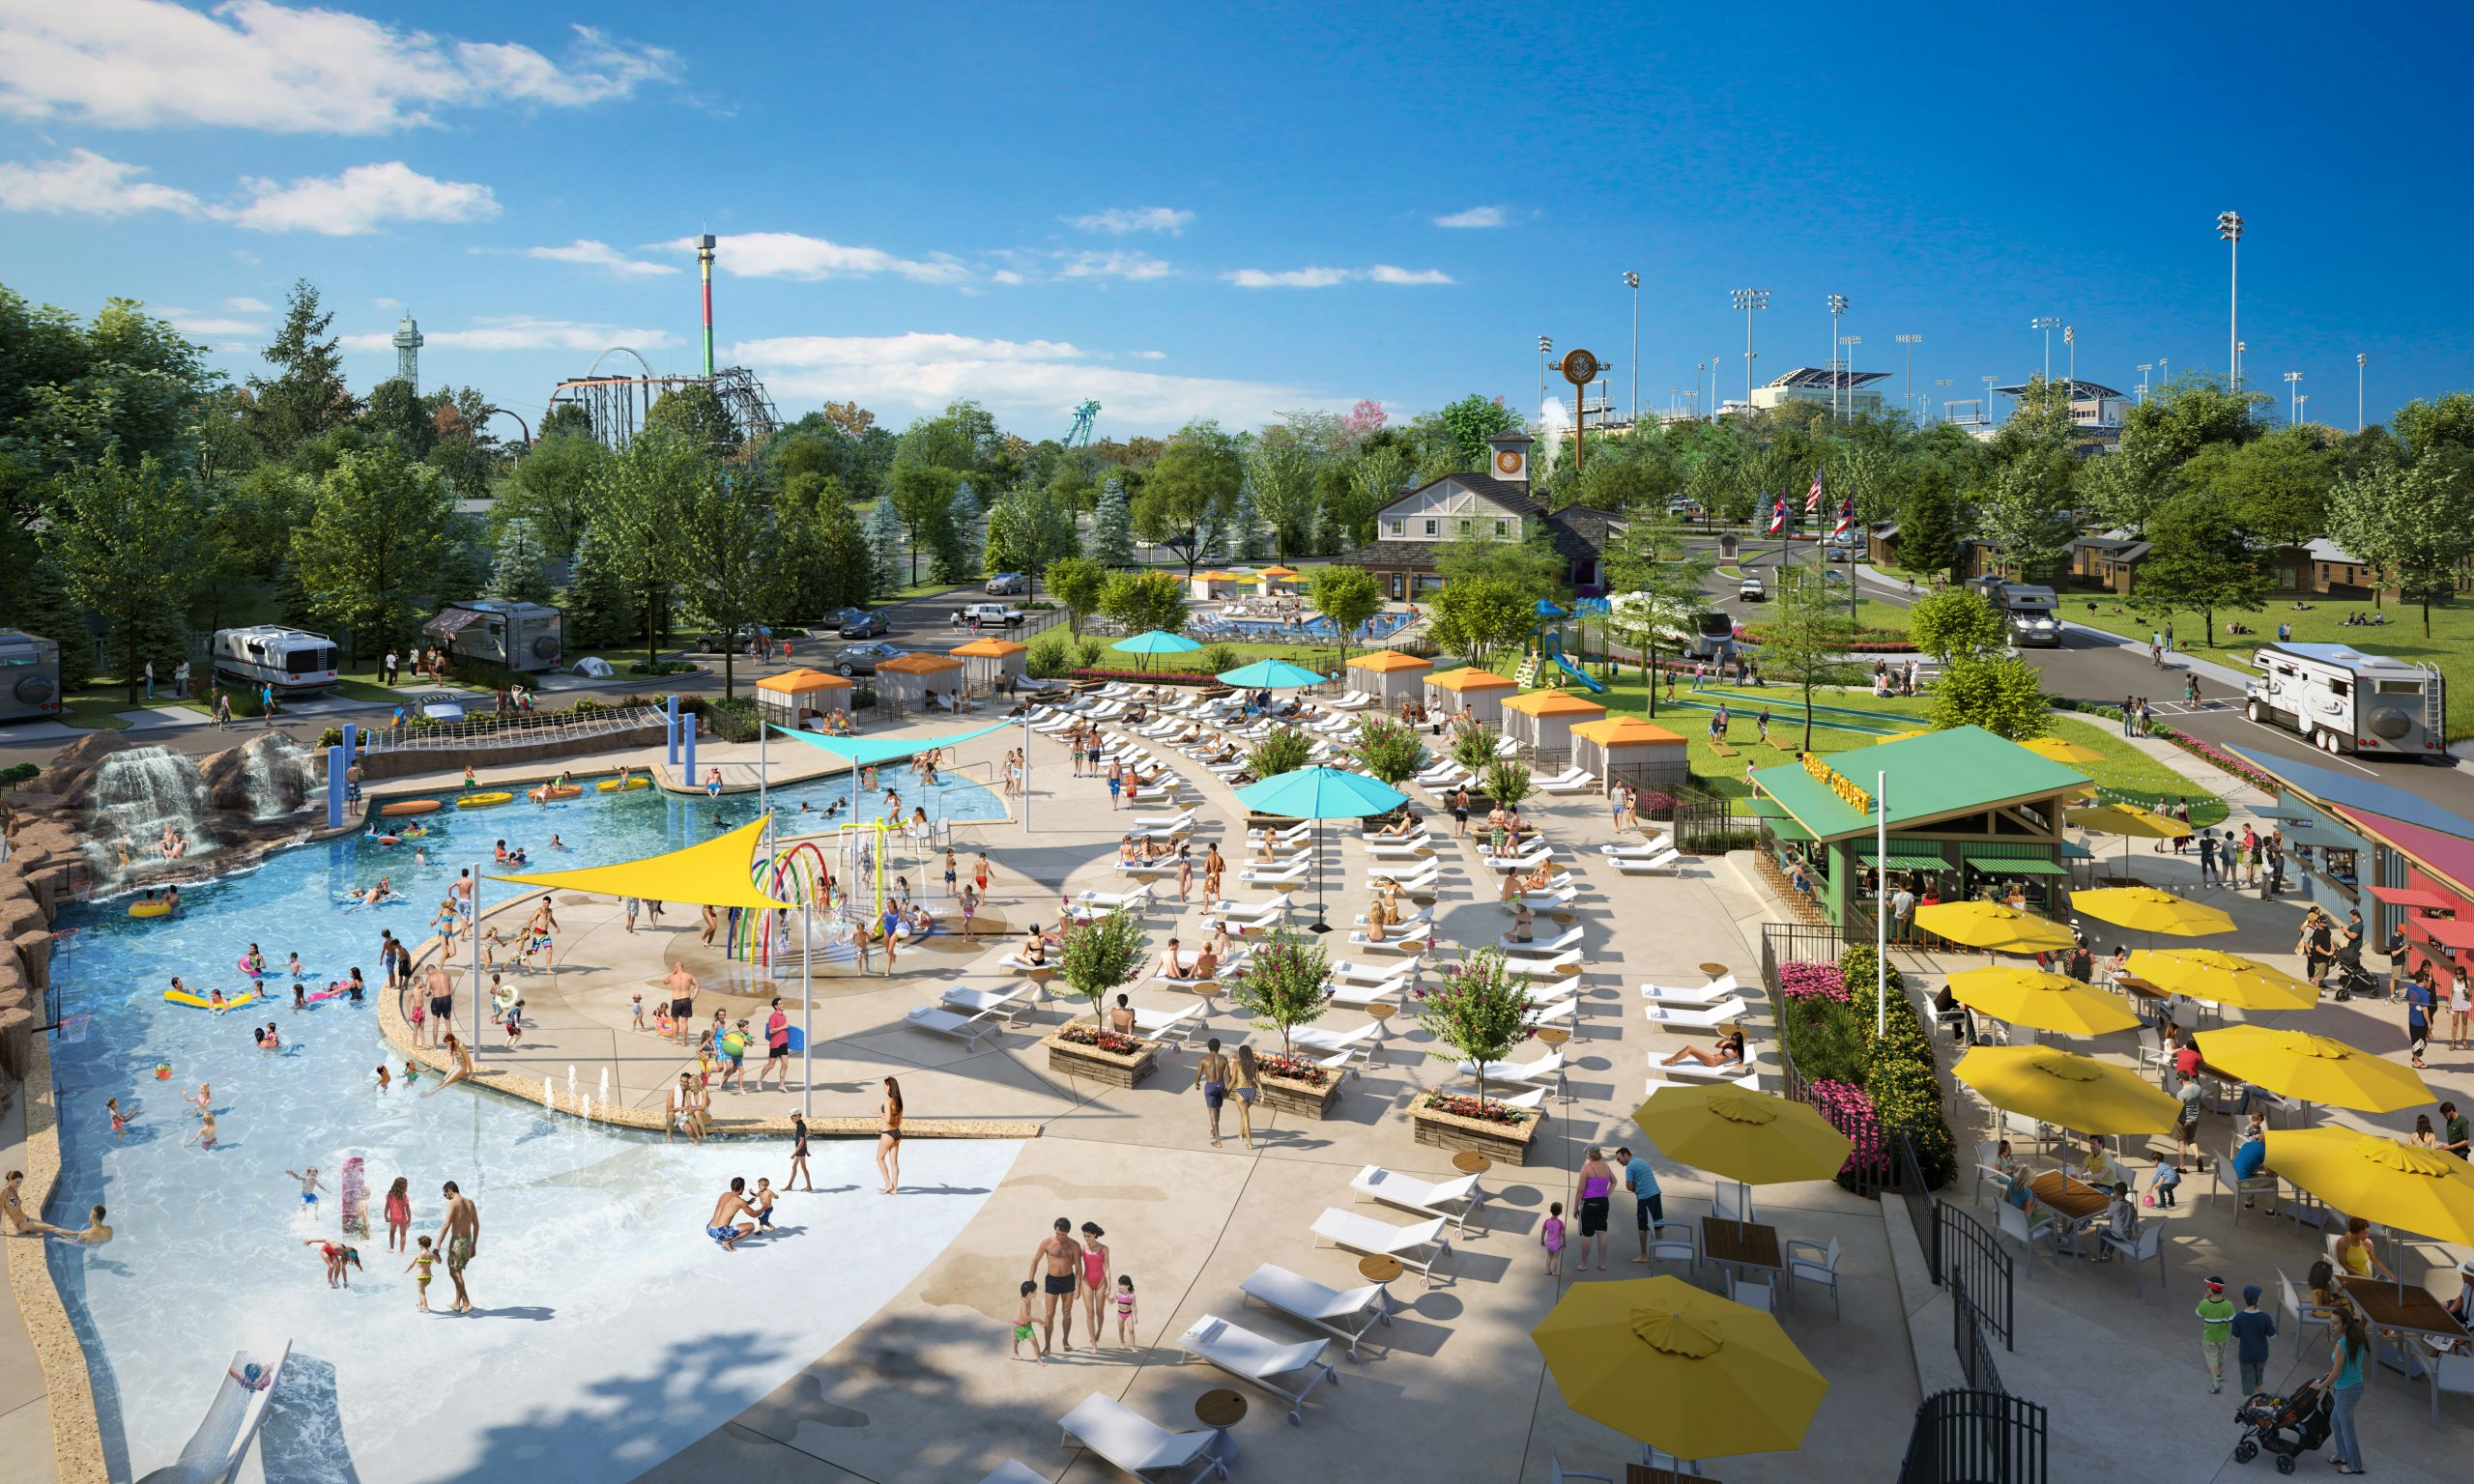 Kings Island Camp Cedar, a year-round, luxury outdoor resort, will open spring 2021 as the official lodging destination for Kings Island Amusement Park in Mason, Oh. A hybrid resort and RV destination, guests will enjoy expansive pools, dining and shopping and family programing, events and amenities. Photo Credit: Kings Island Camp Cedar